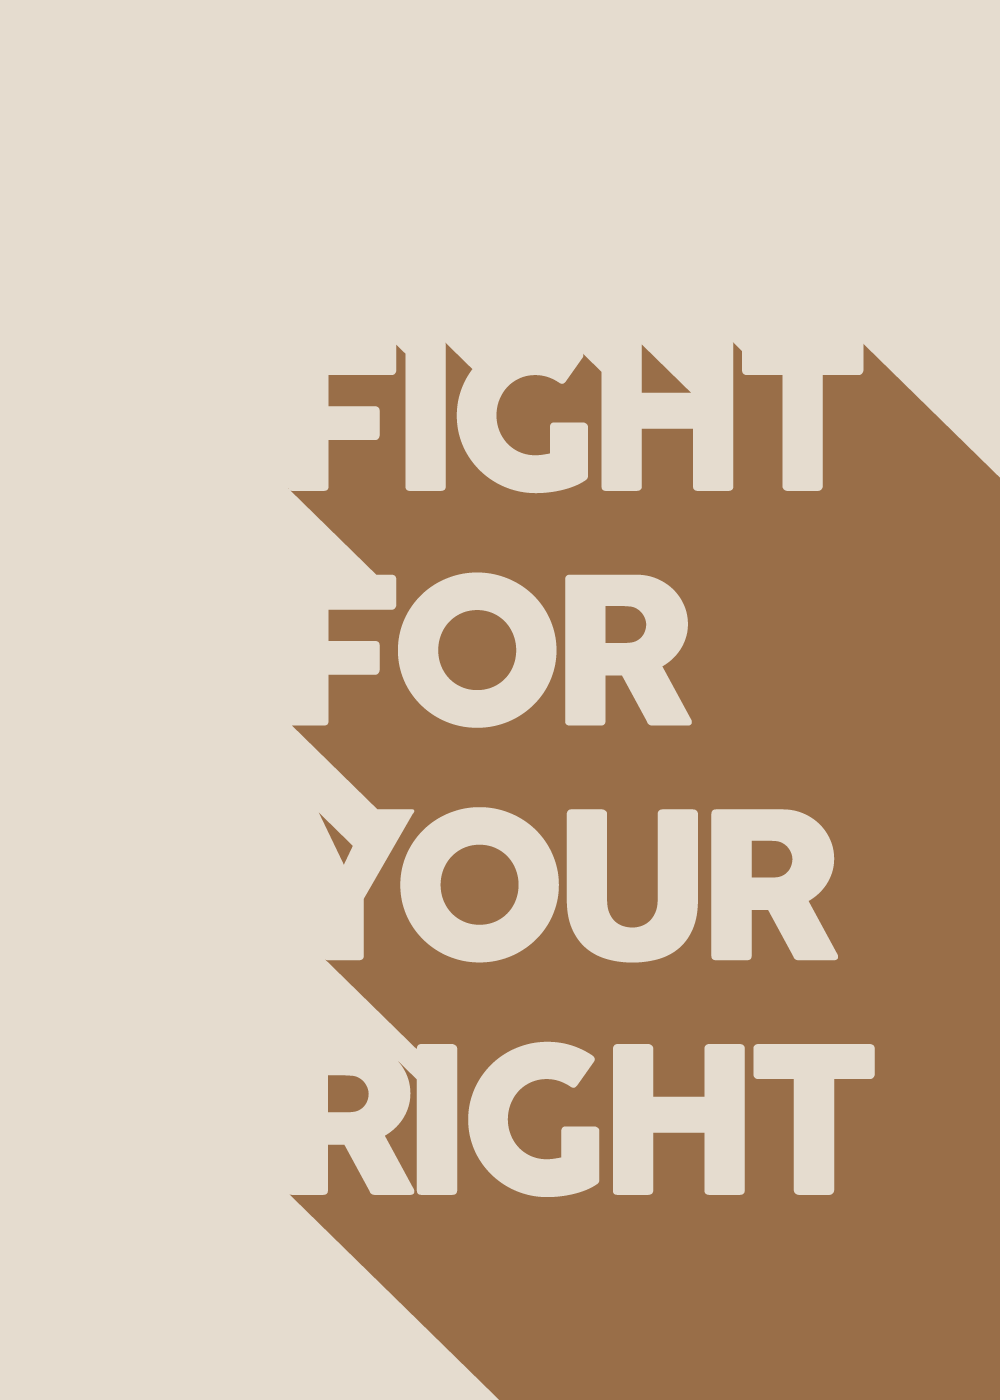 Fight for your right - plakat